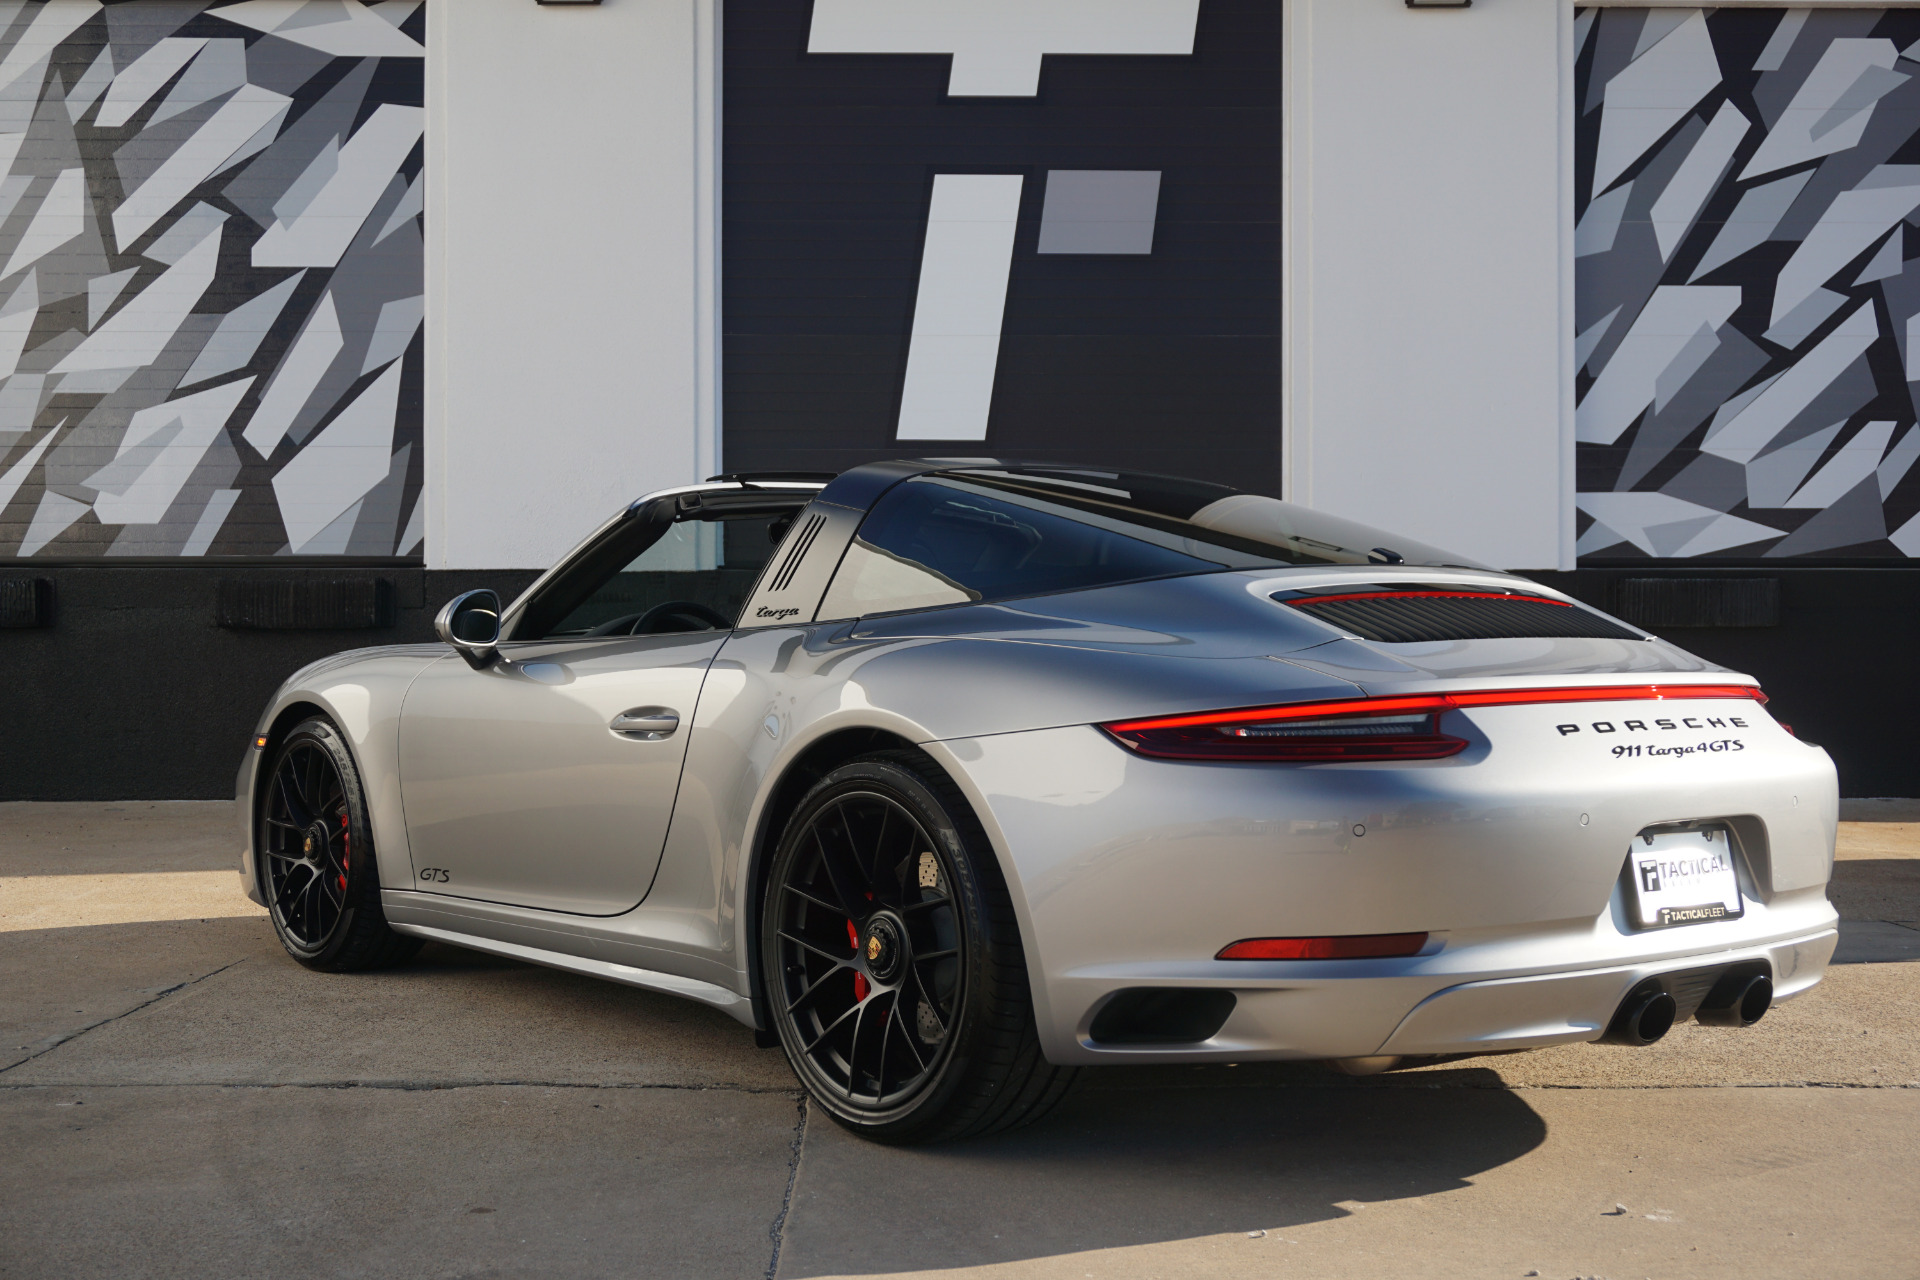 Used 2018 Porsche 911 Targa 4 Gts For Sale 149 900 Tactical Fleet Stock Tf1193